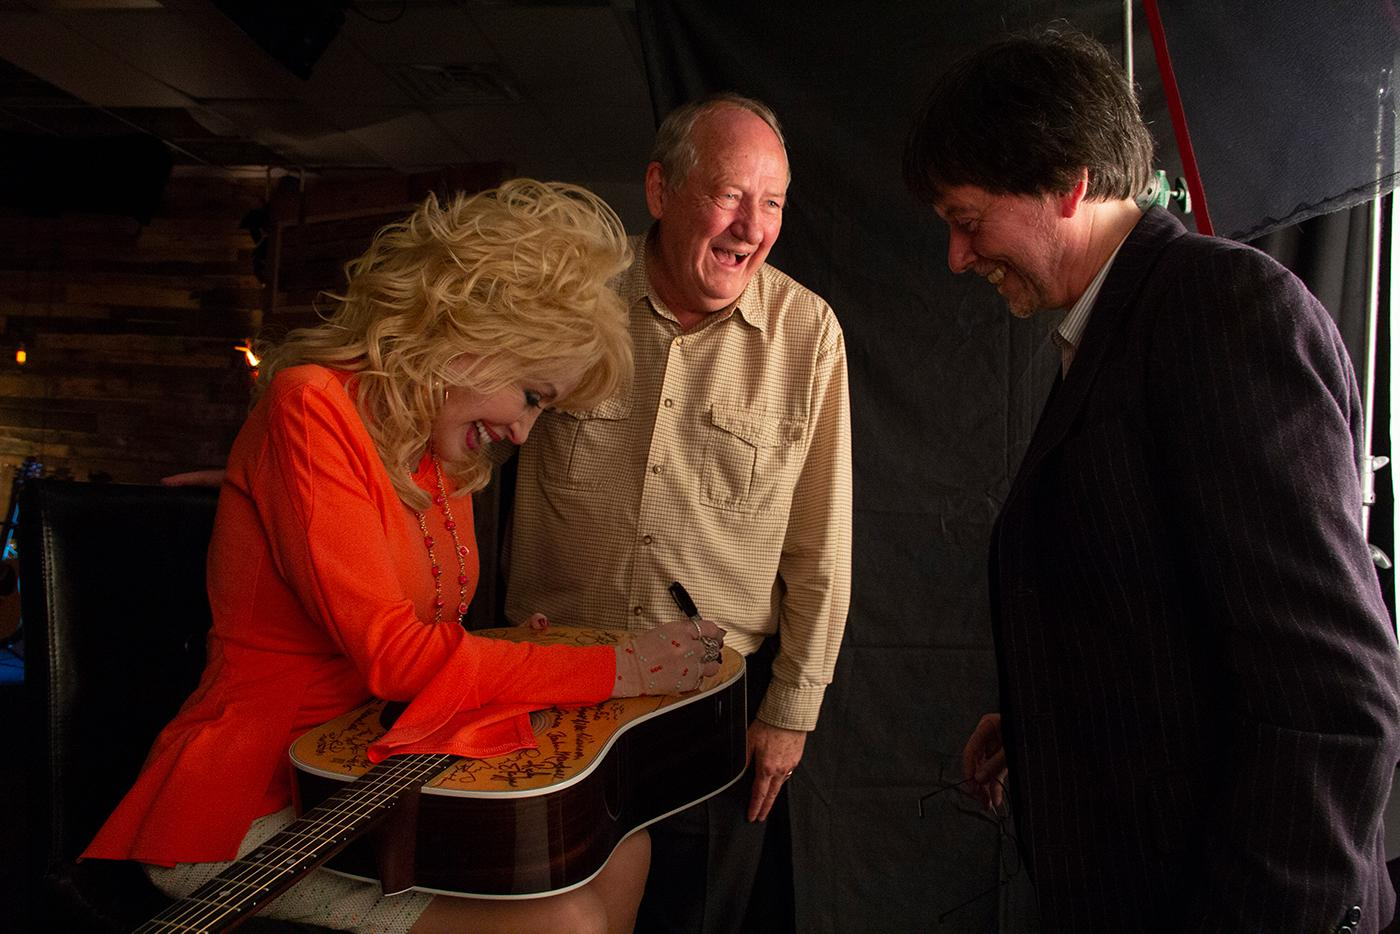 Dolly Parton signs a Martin D-28 guitar, with Dayton Duncan and Ken Burns, after being interviewed for 'Country Music.' Photo: Katy Haas